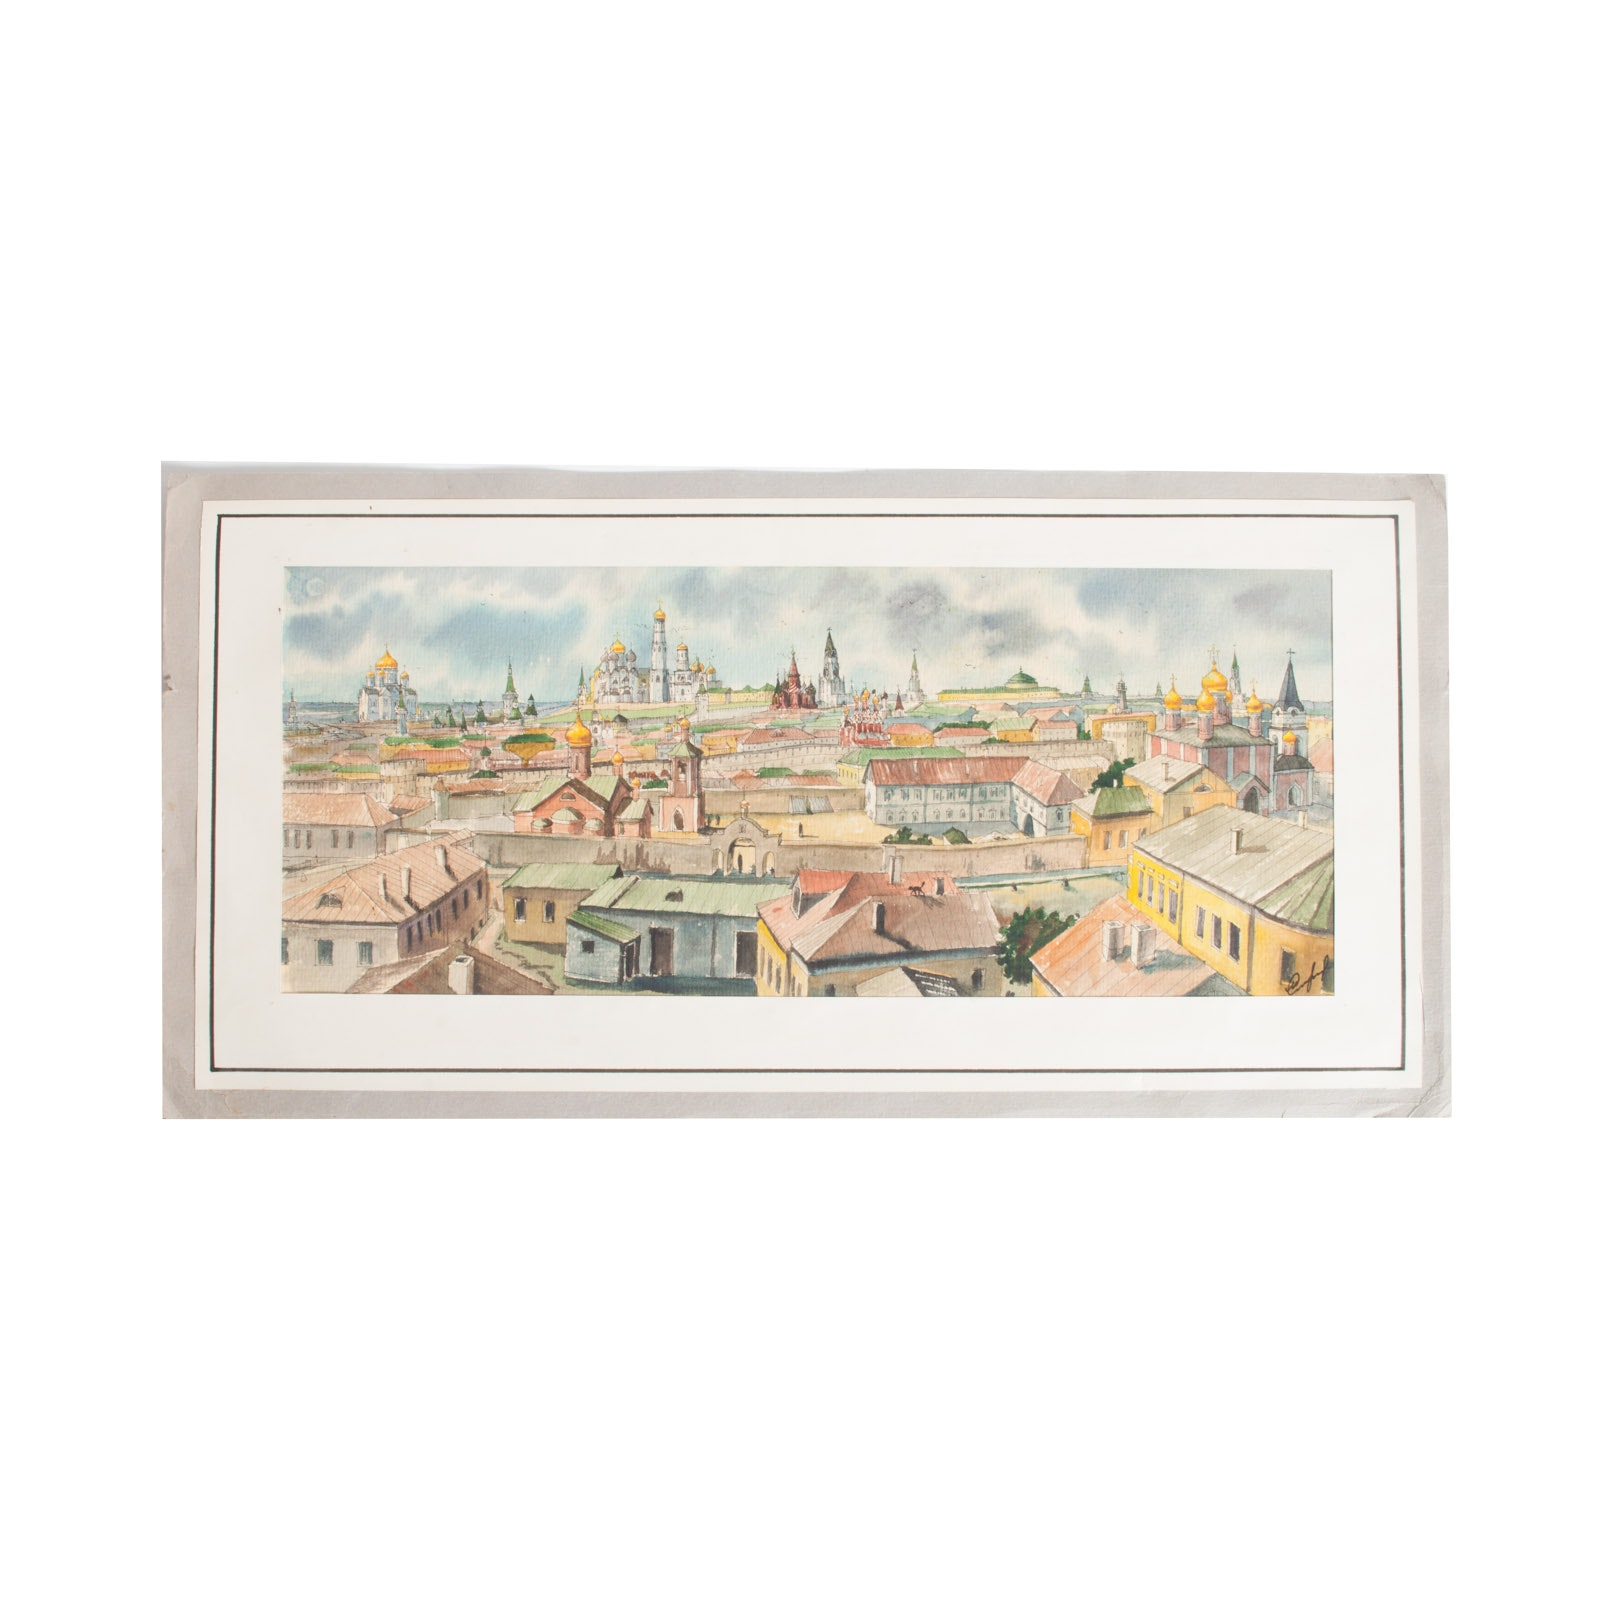 Original Watercolor Painting on Paper of St. Petersburg Cityscape